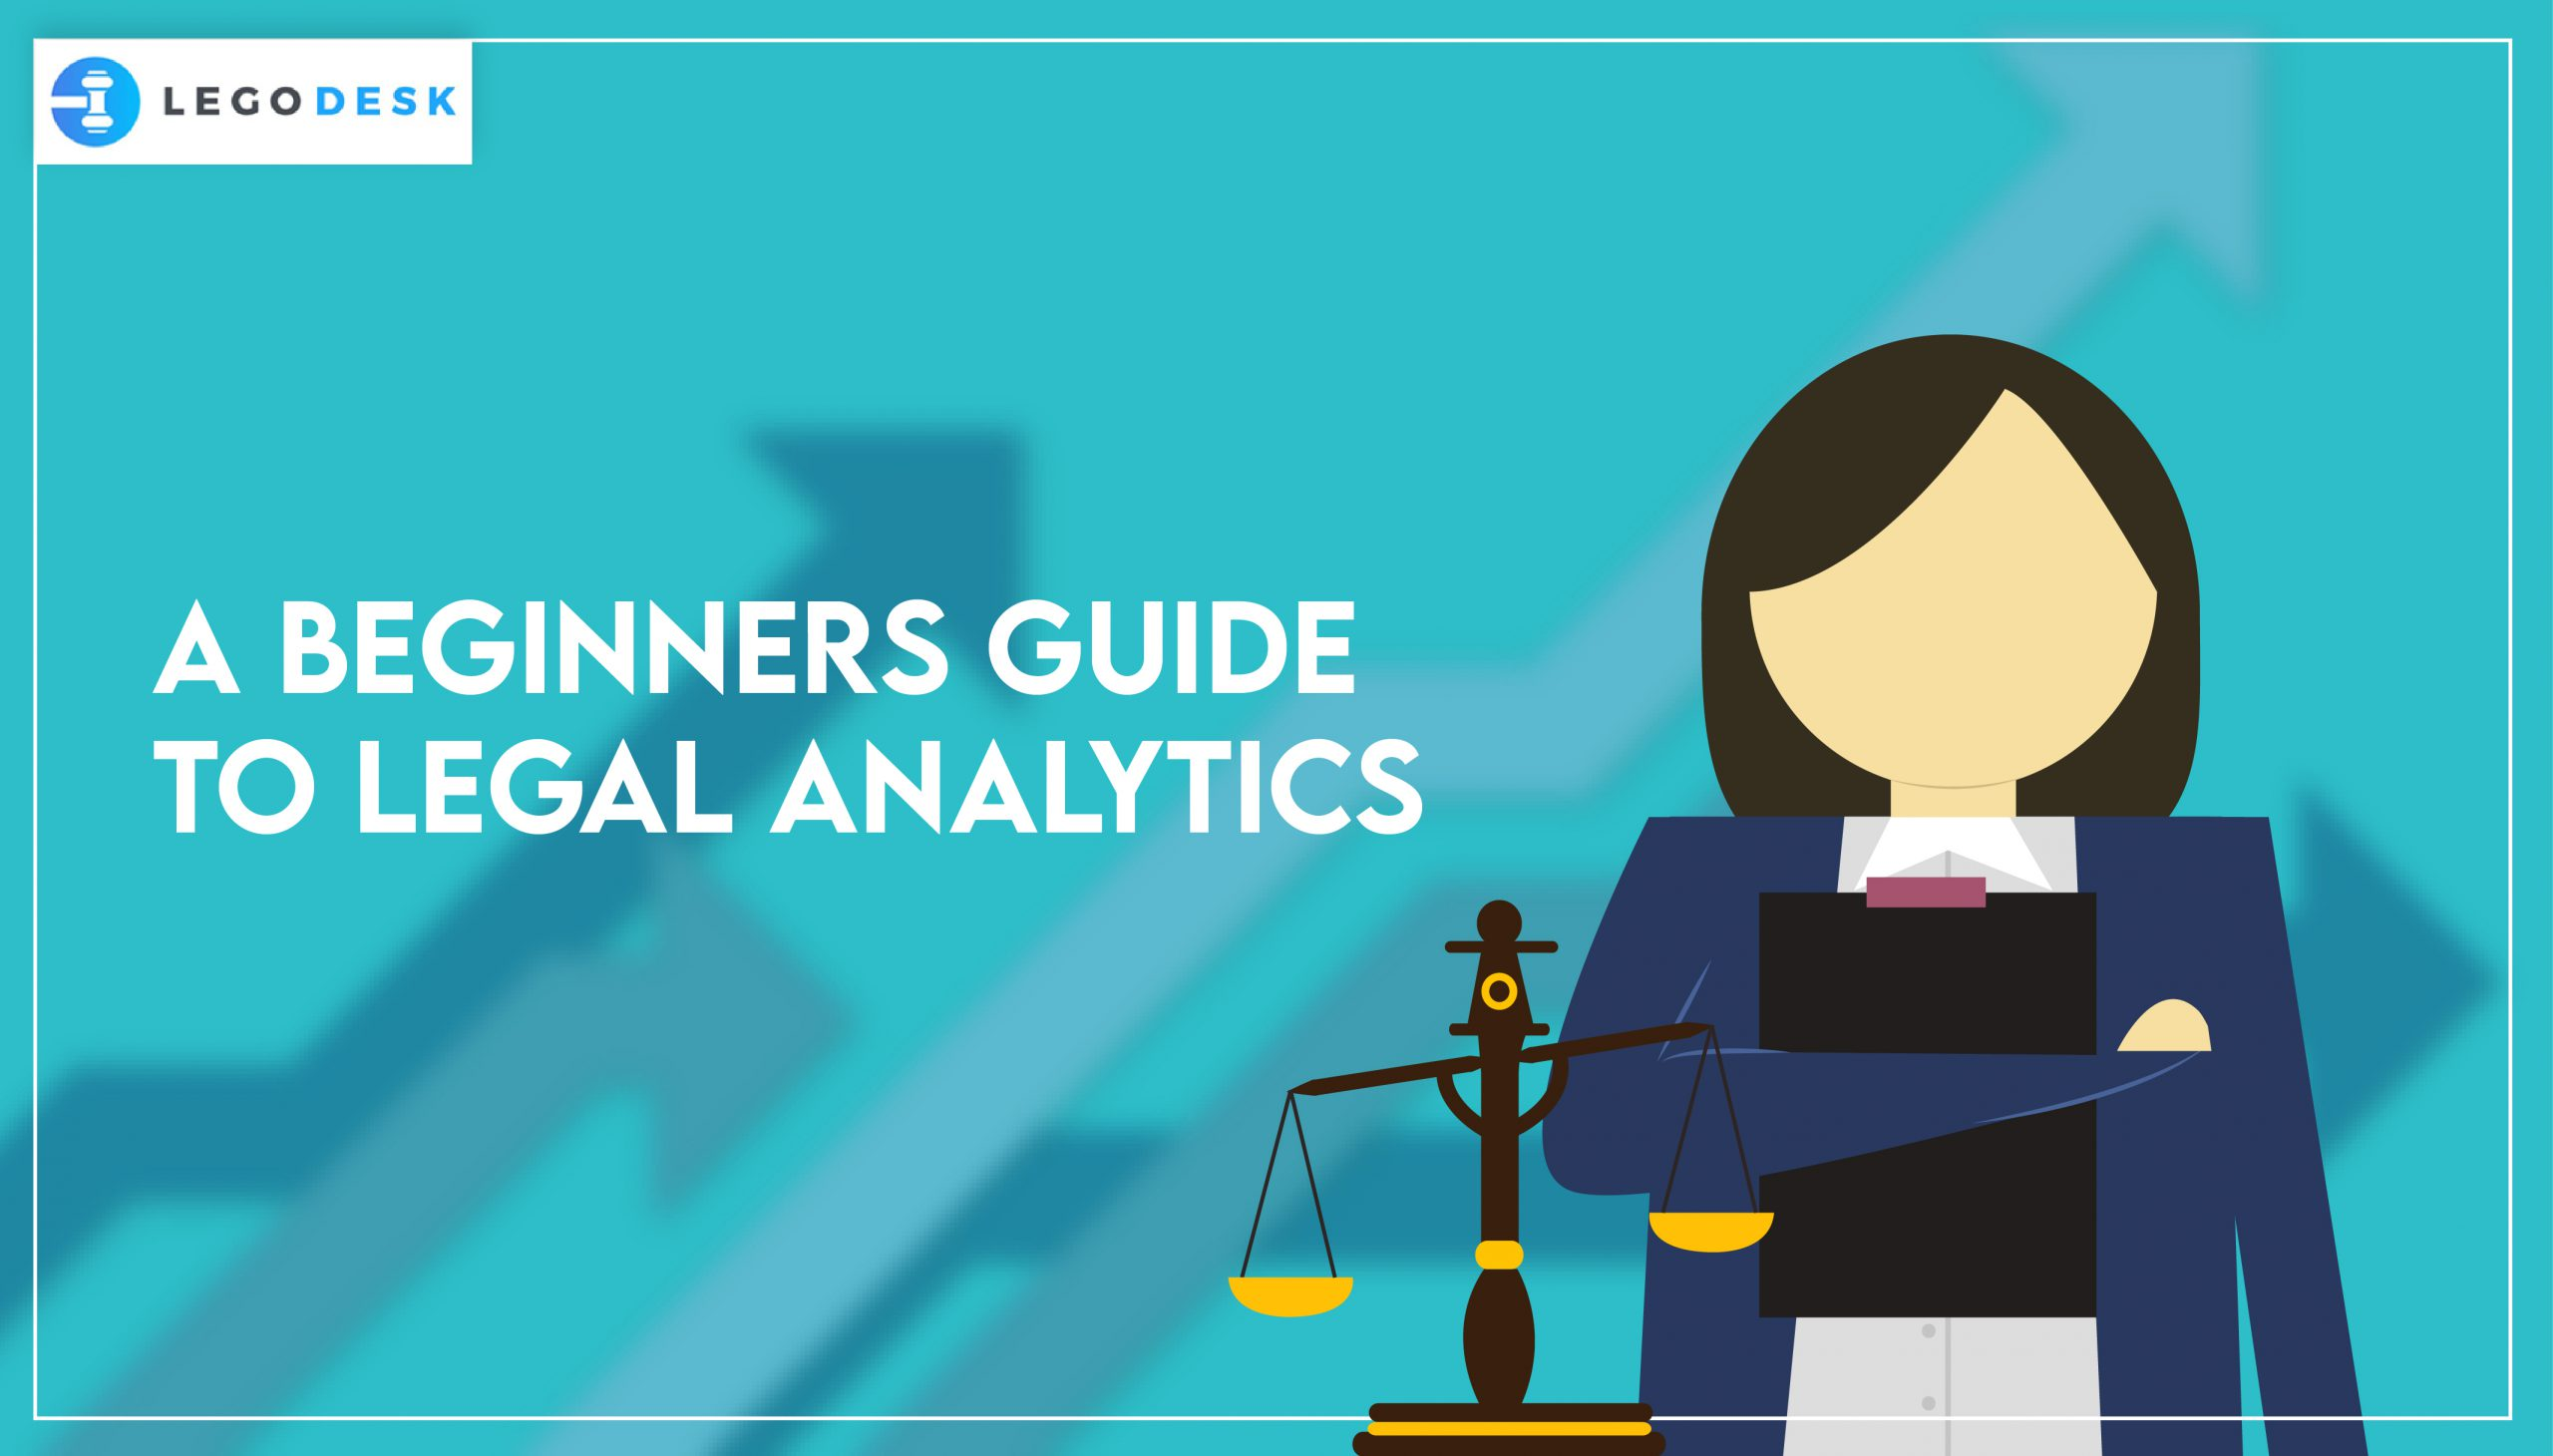 A Beginners Guide to Legal Analytics